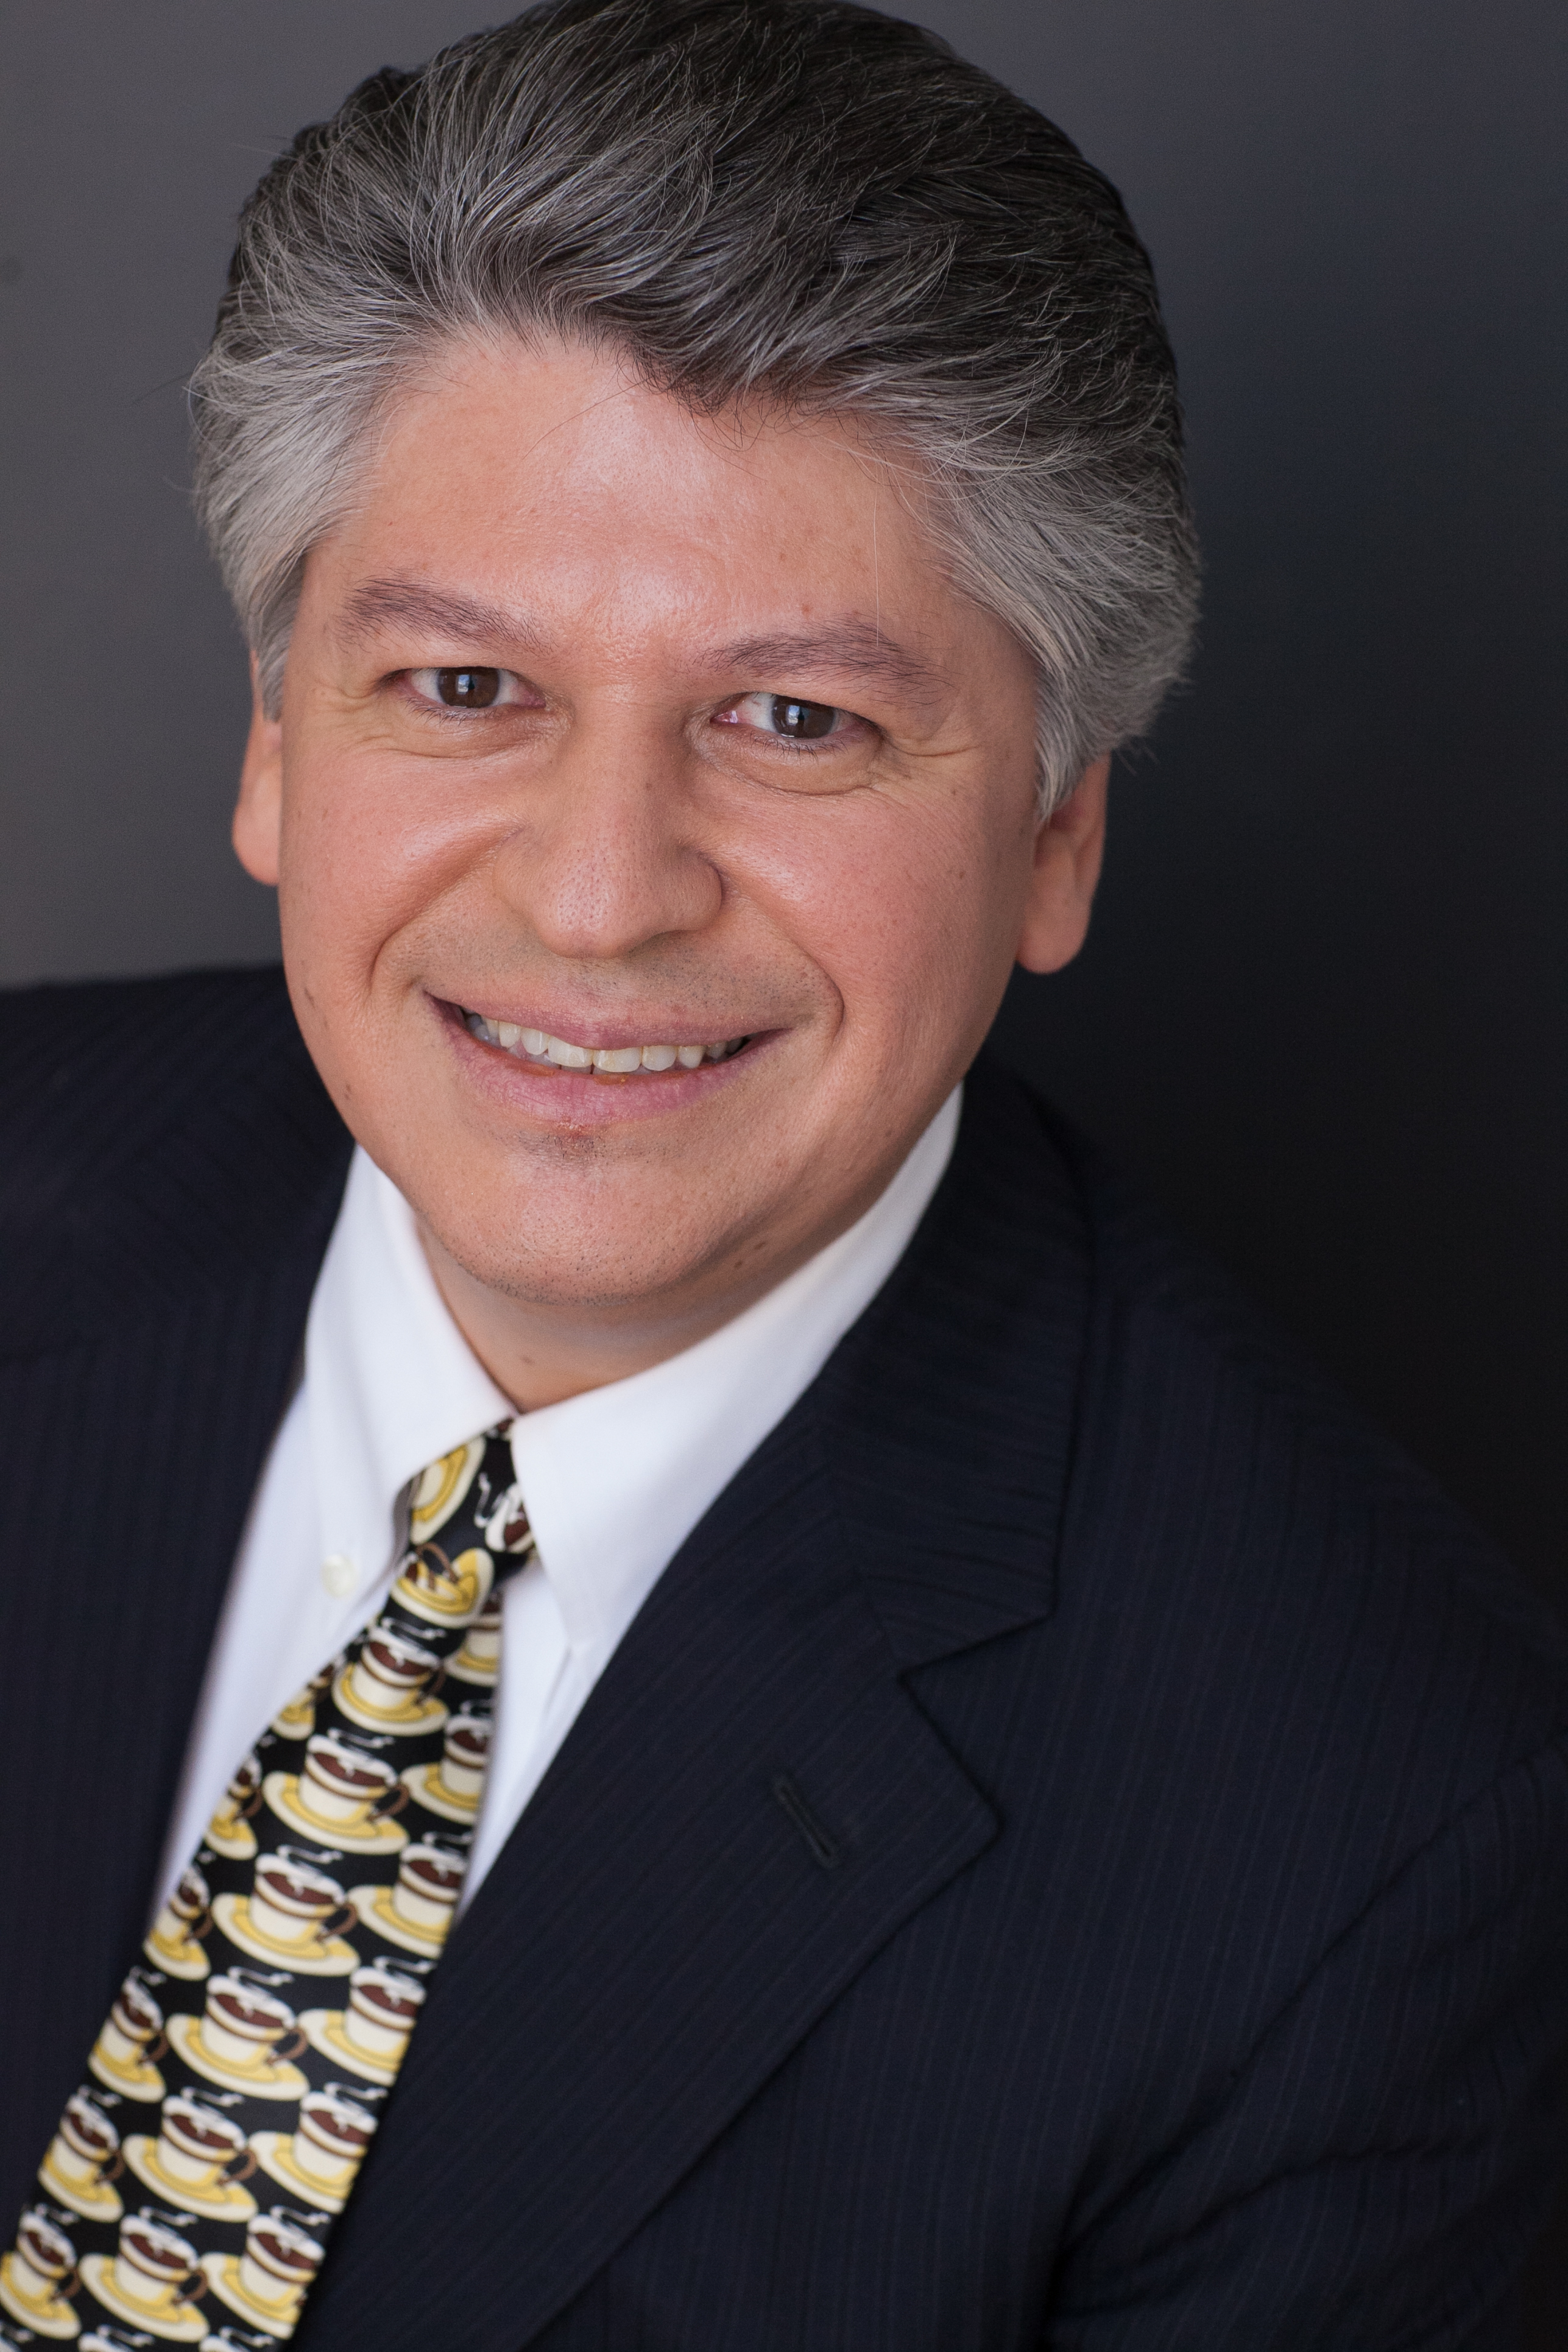 Alejandro Garcia-Palacios selected as Top CEO of the Year by the International Association of Top Professionals (IAOTP)